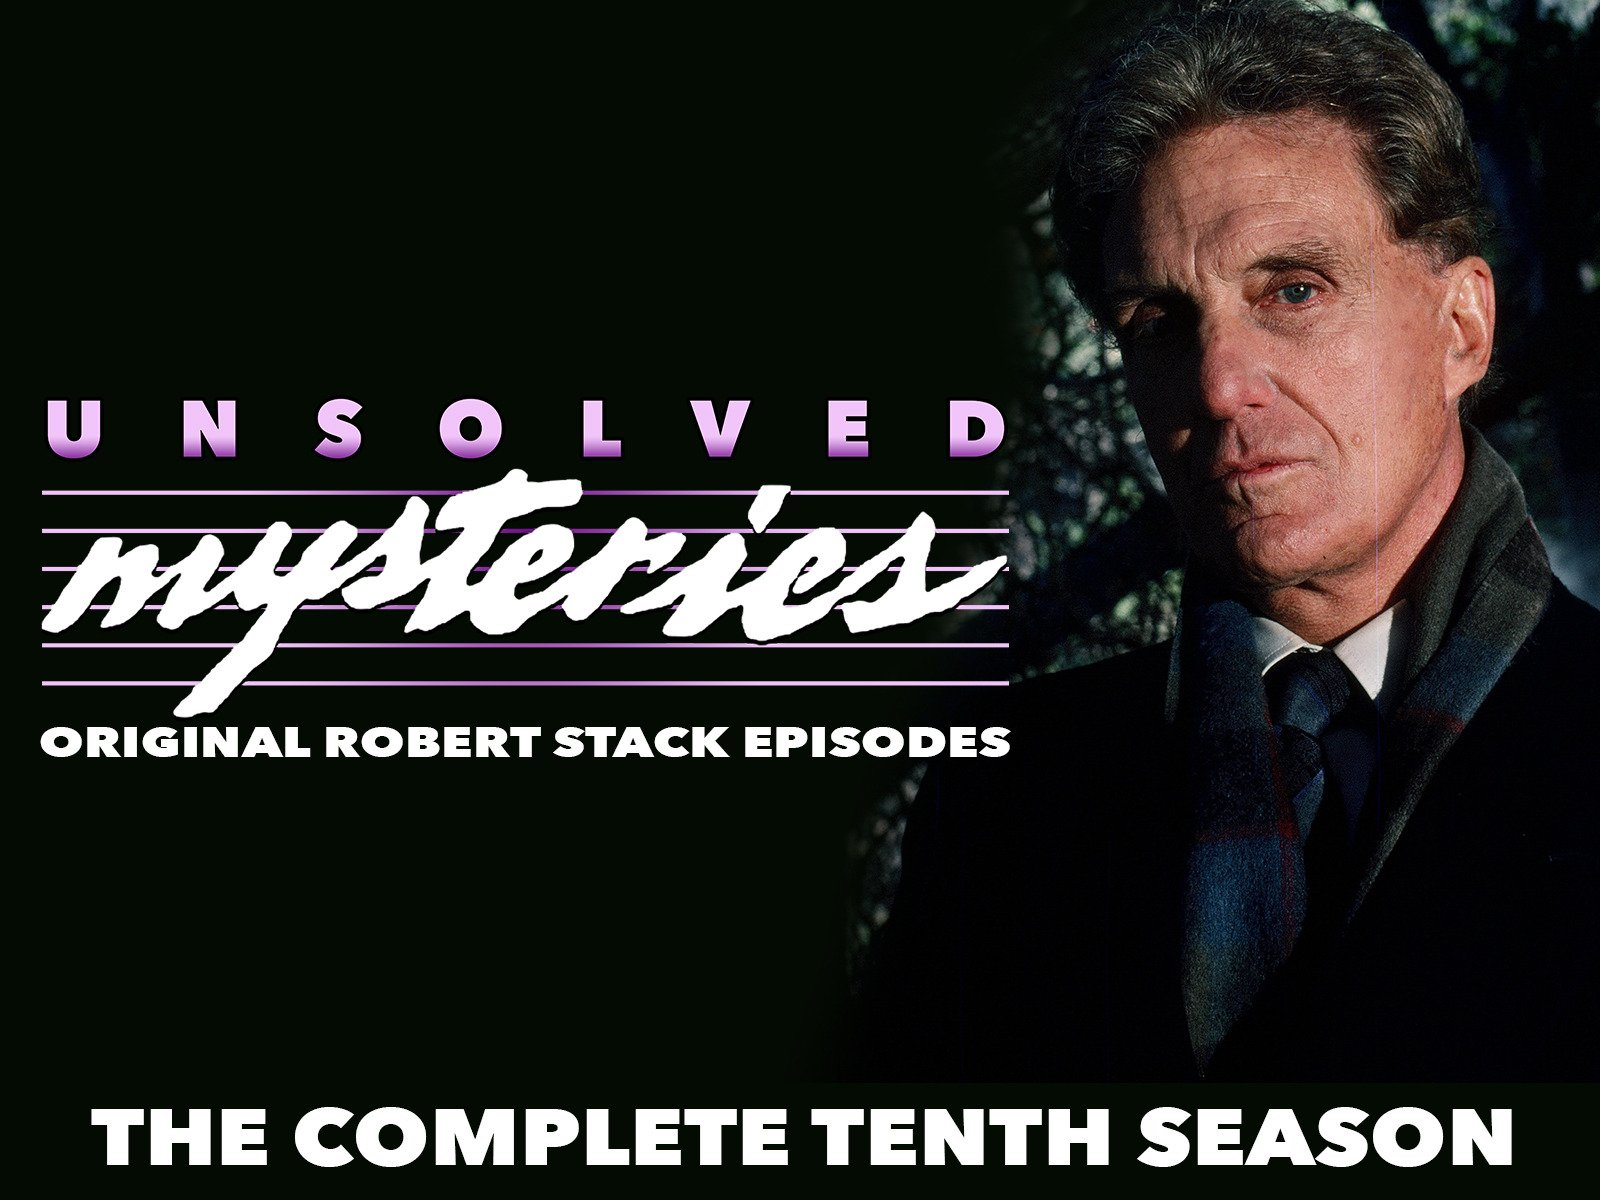 Unsolved Mysteries: Original Robert Stack Episodes - Season 10